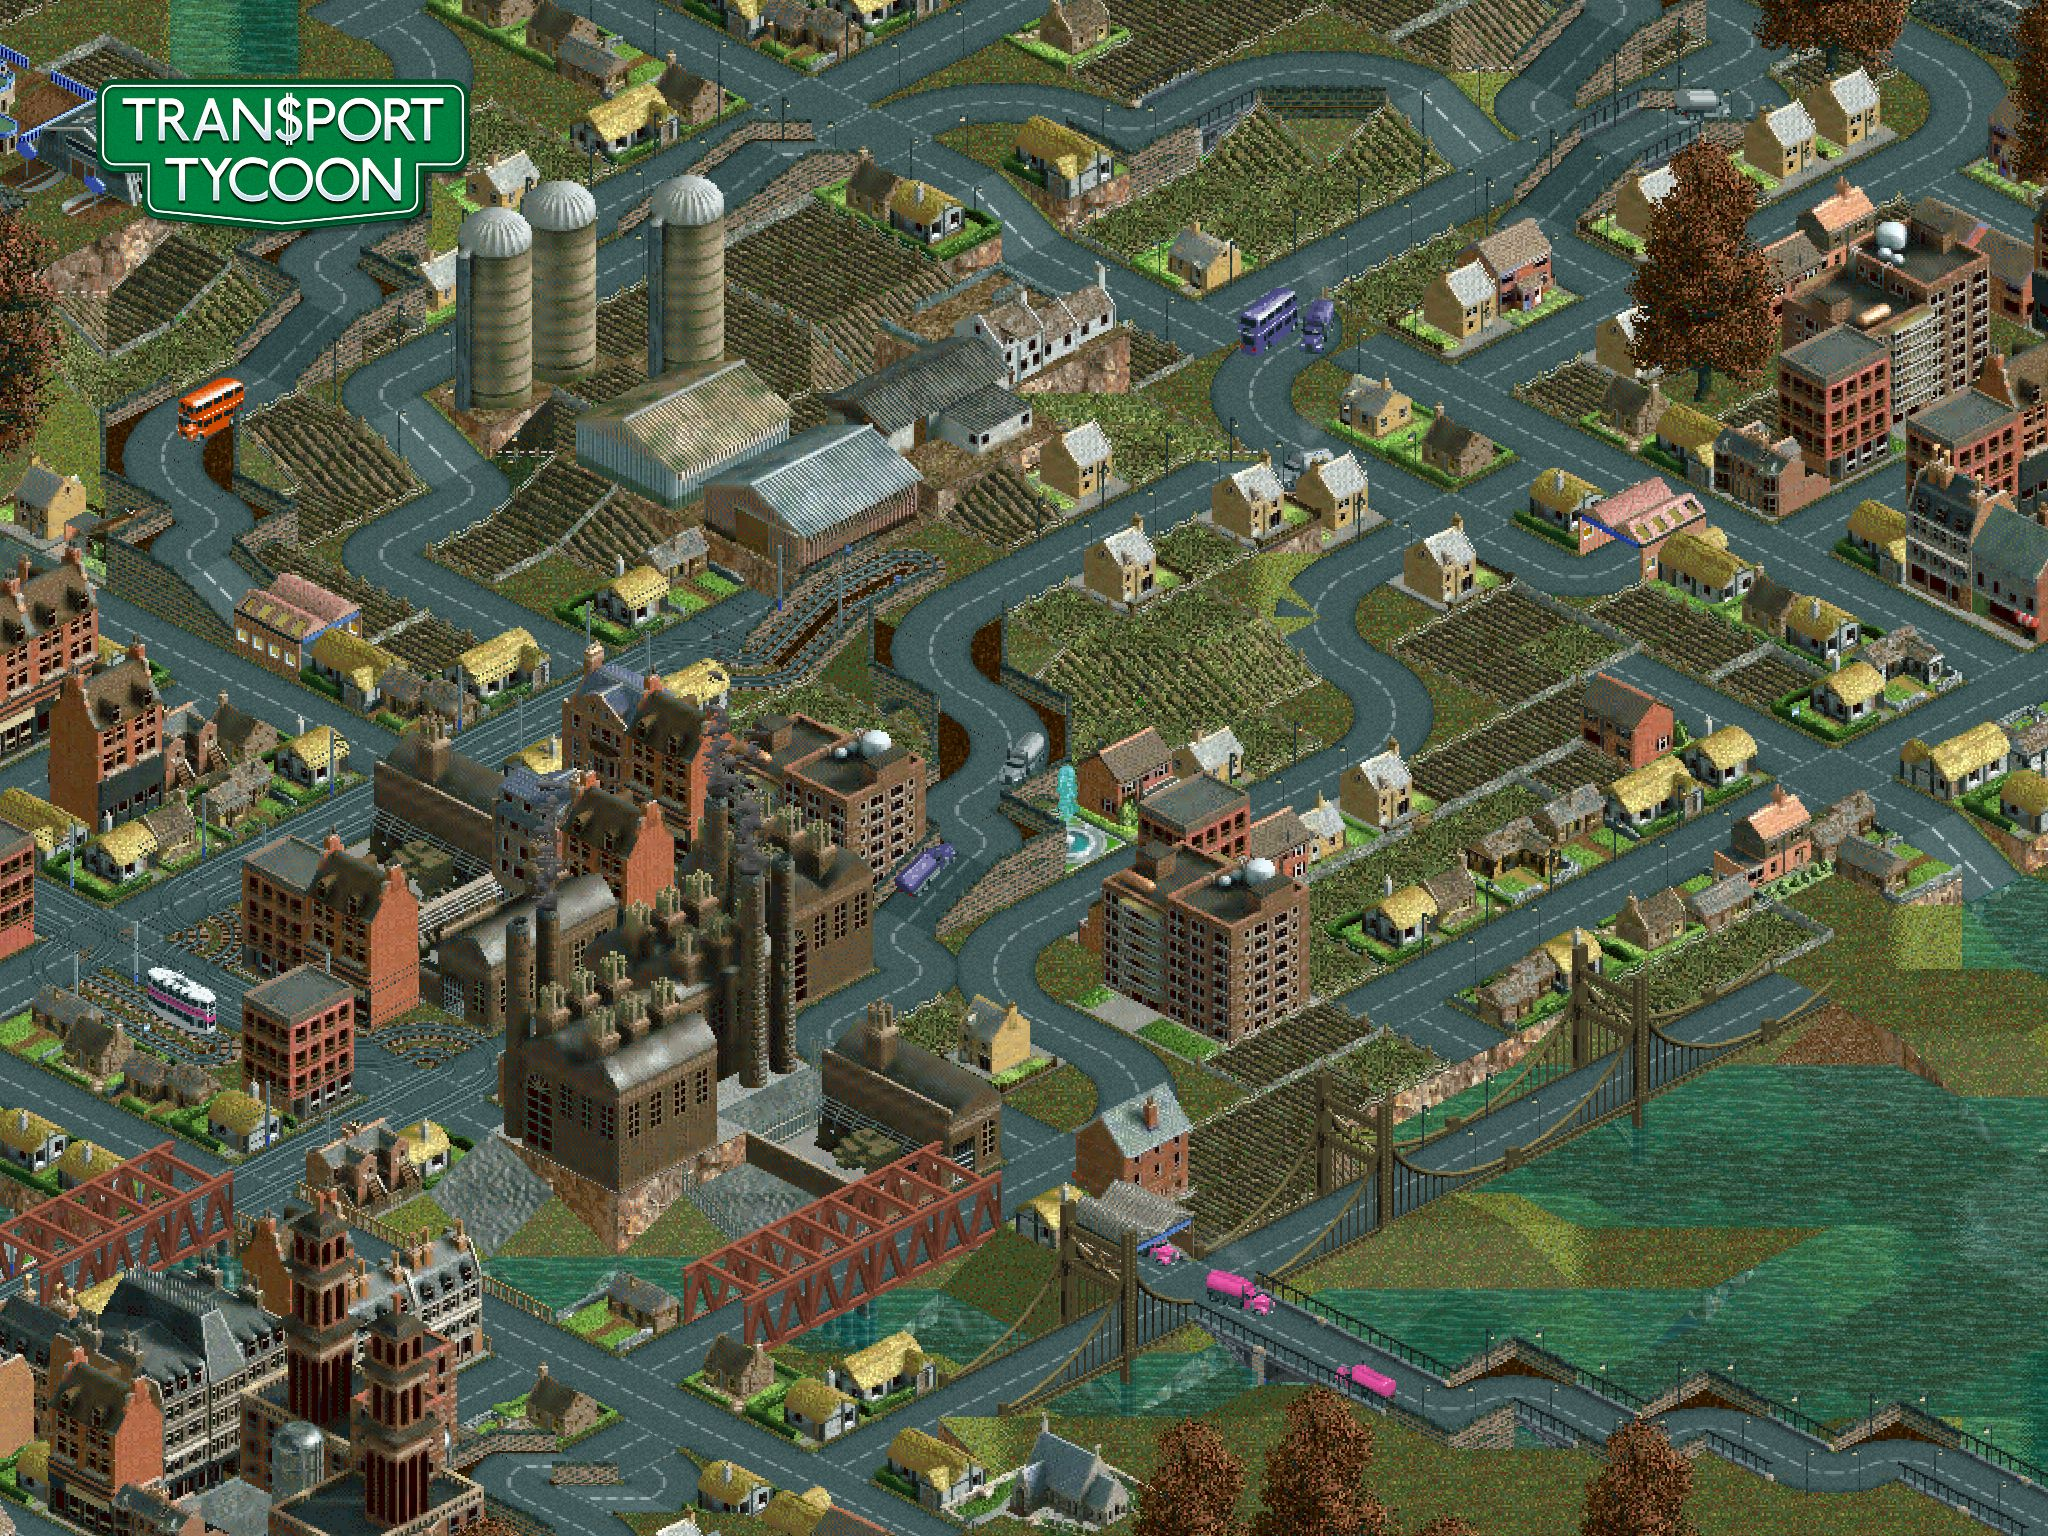 Chris Sawyer confirms Transport Tycoon for iOS and Android won't be free-to-play